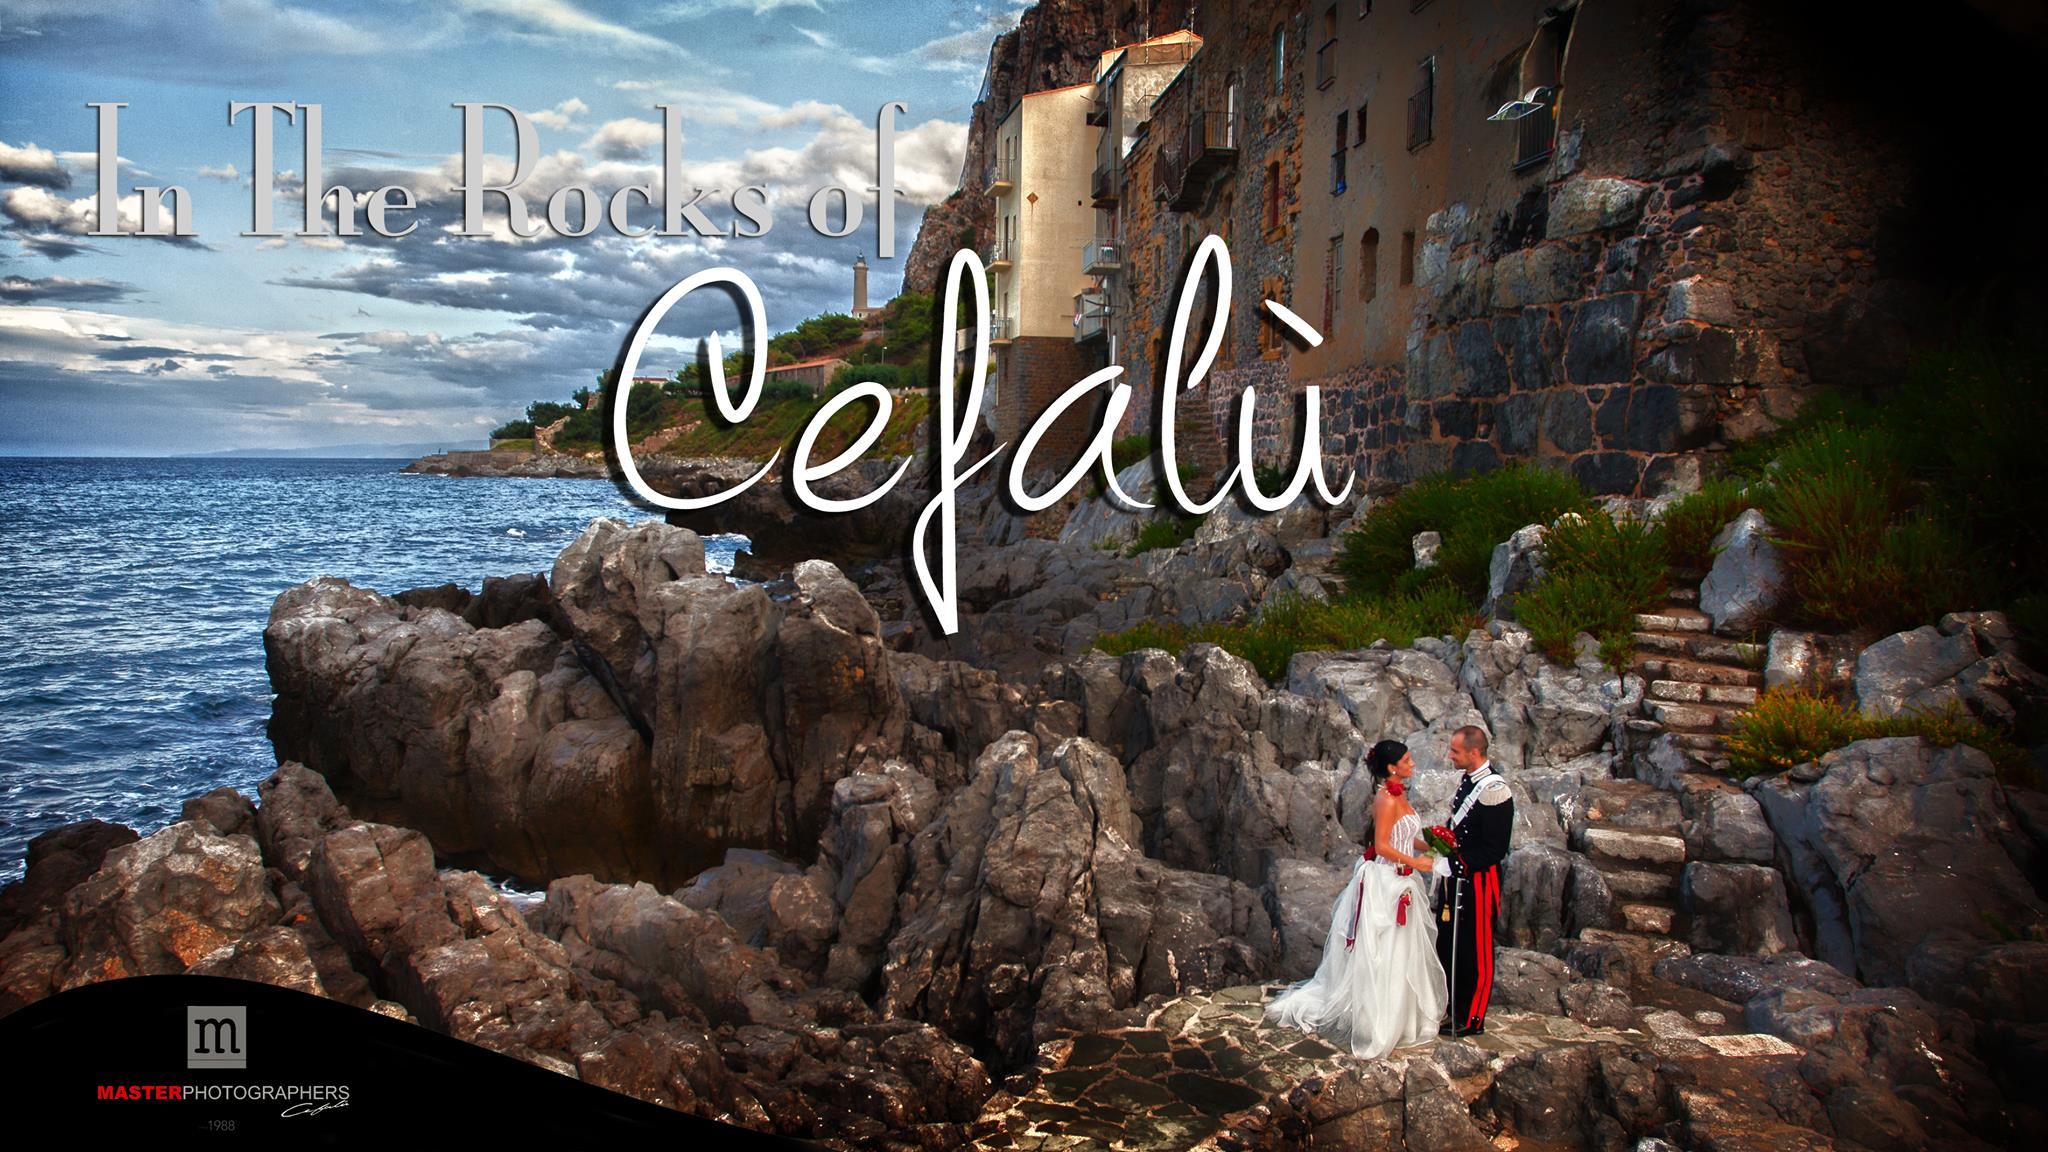 In the rocks of Cefalù